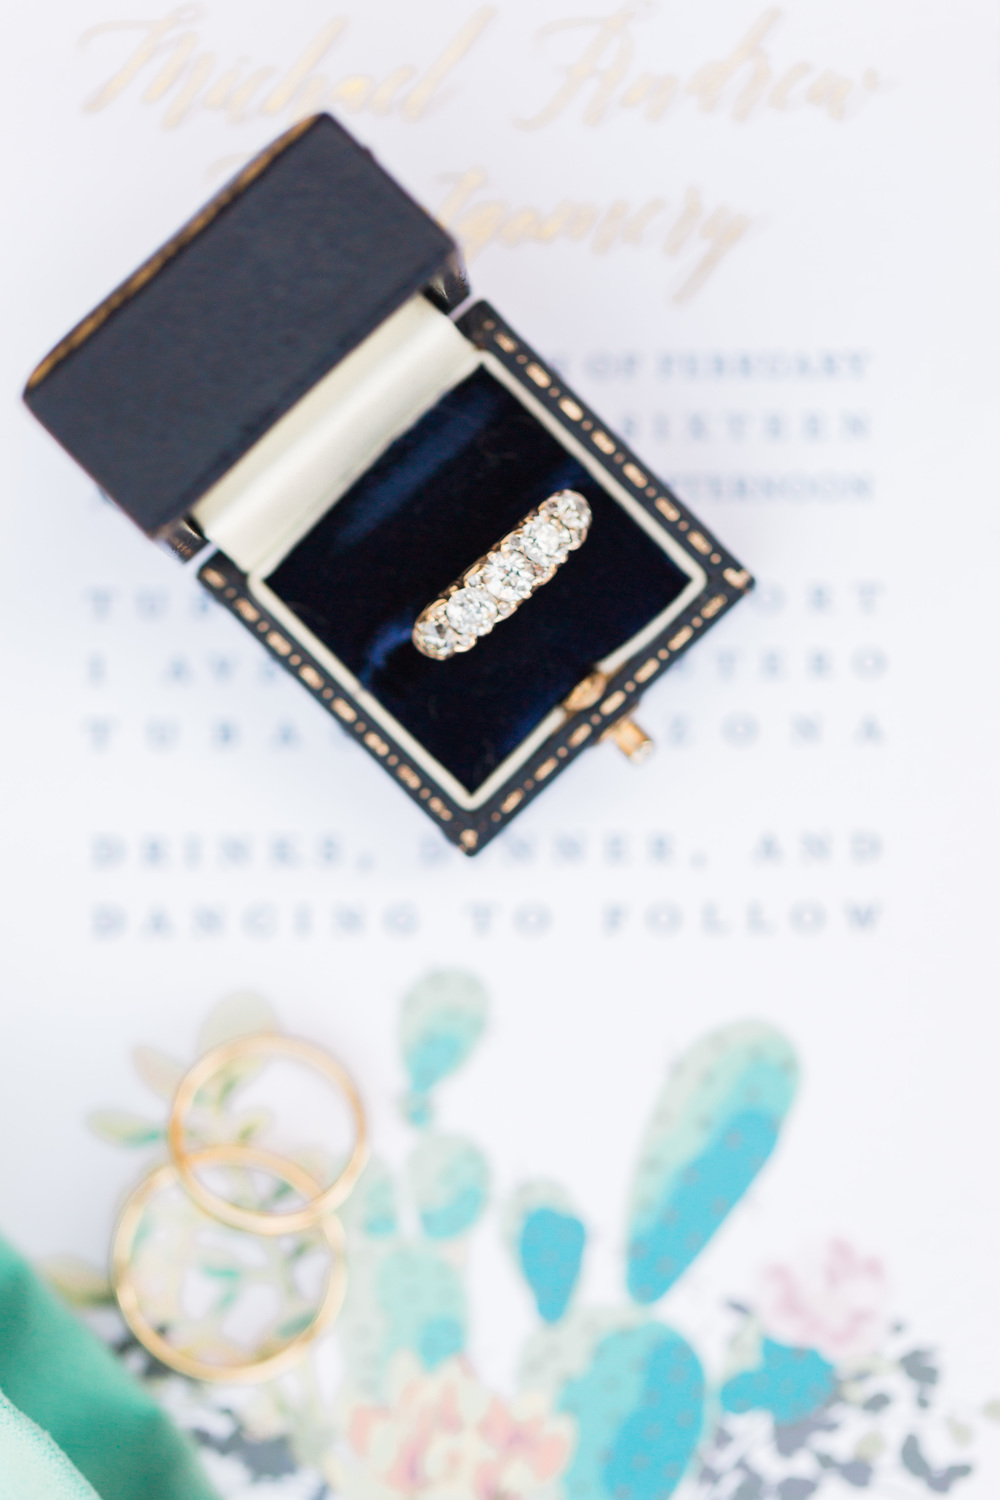 Gorgeous antique Lang jewelry box with gorgeous gold Tiffany wedding bands | Tubac Golf Resort Wedding | Tubac Wedding Photographers | See more at BetsyandJohn.com